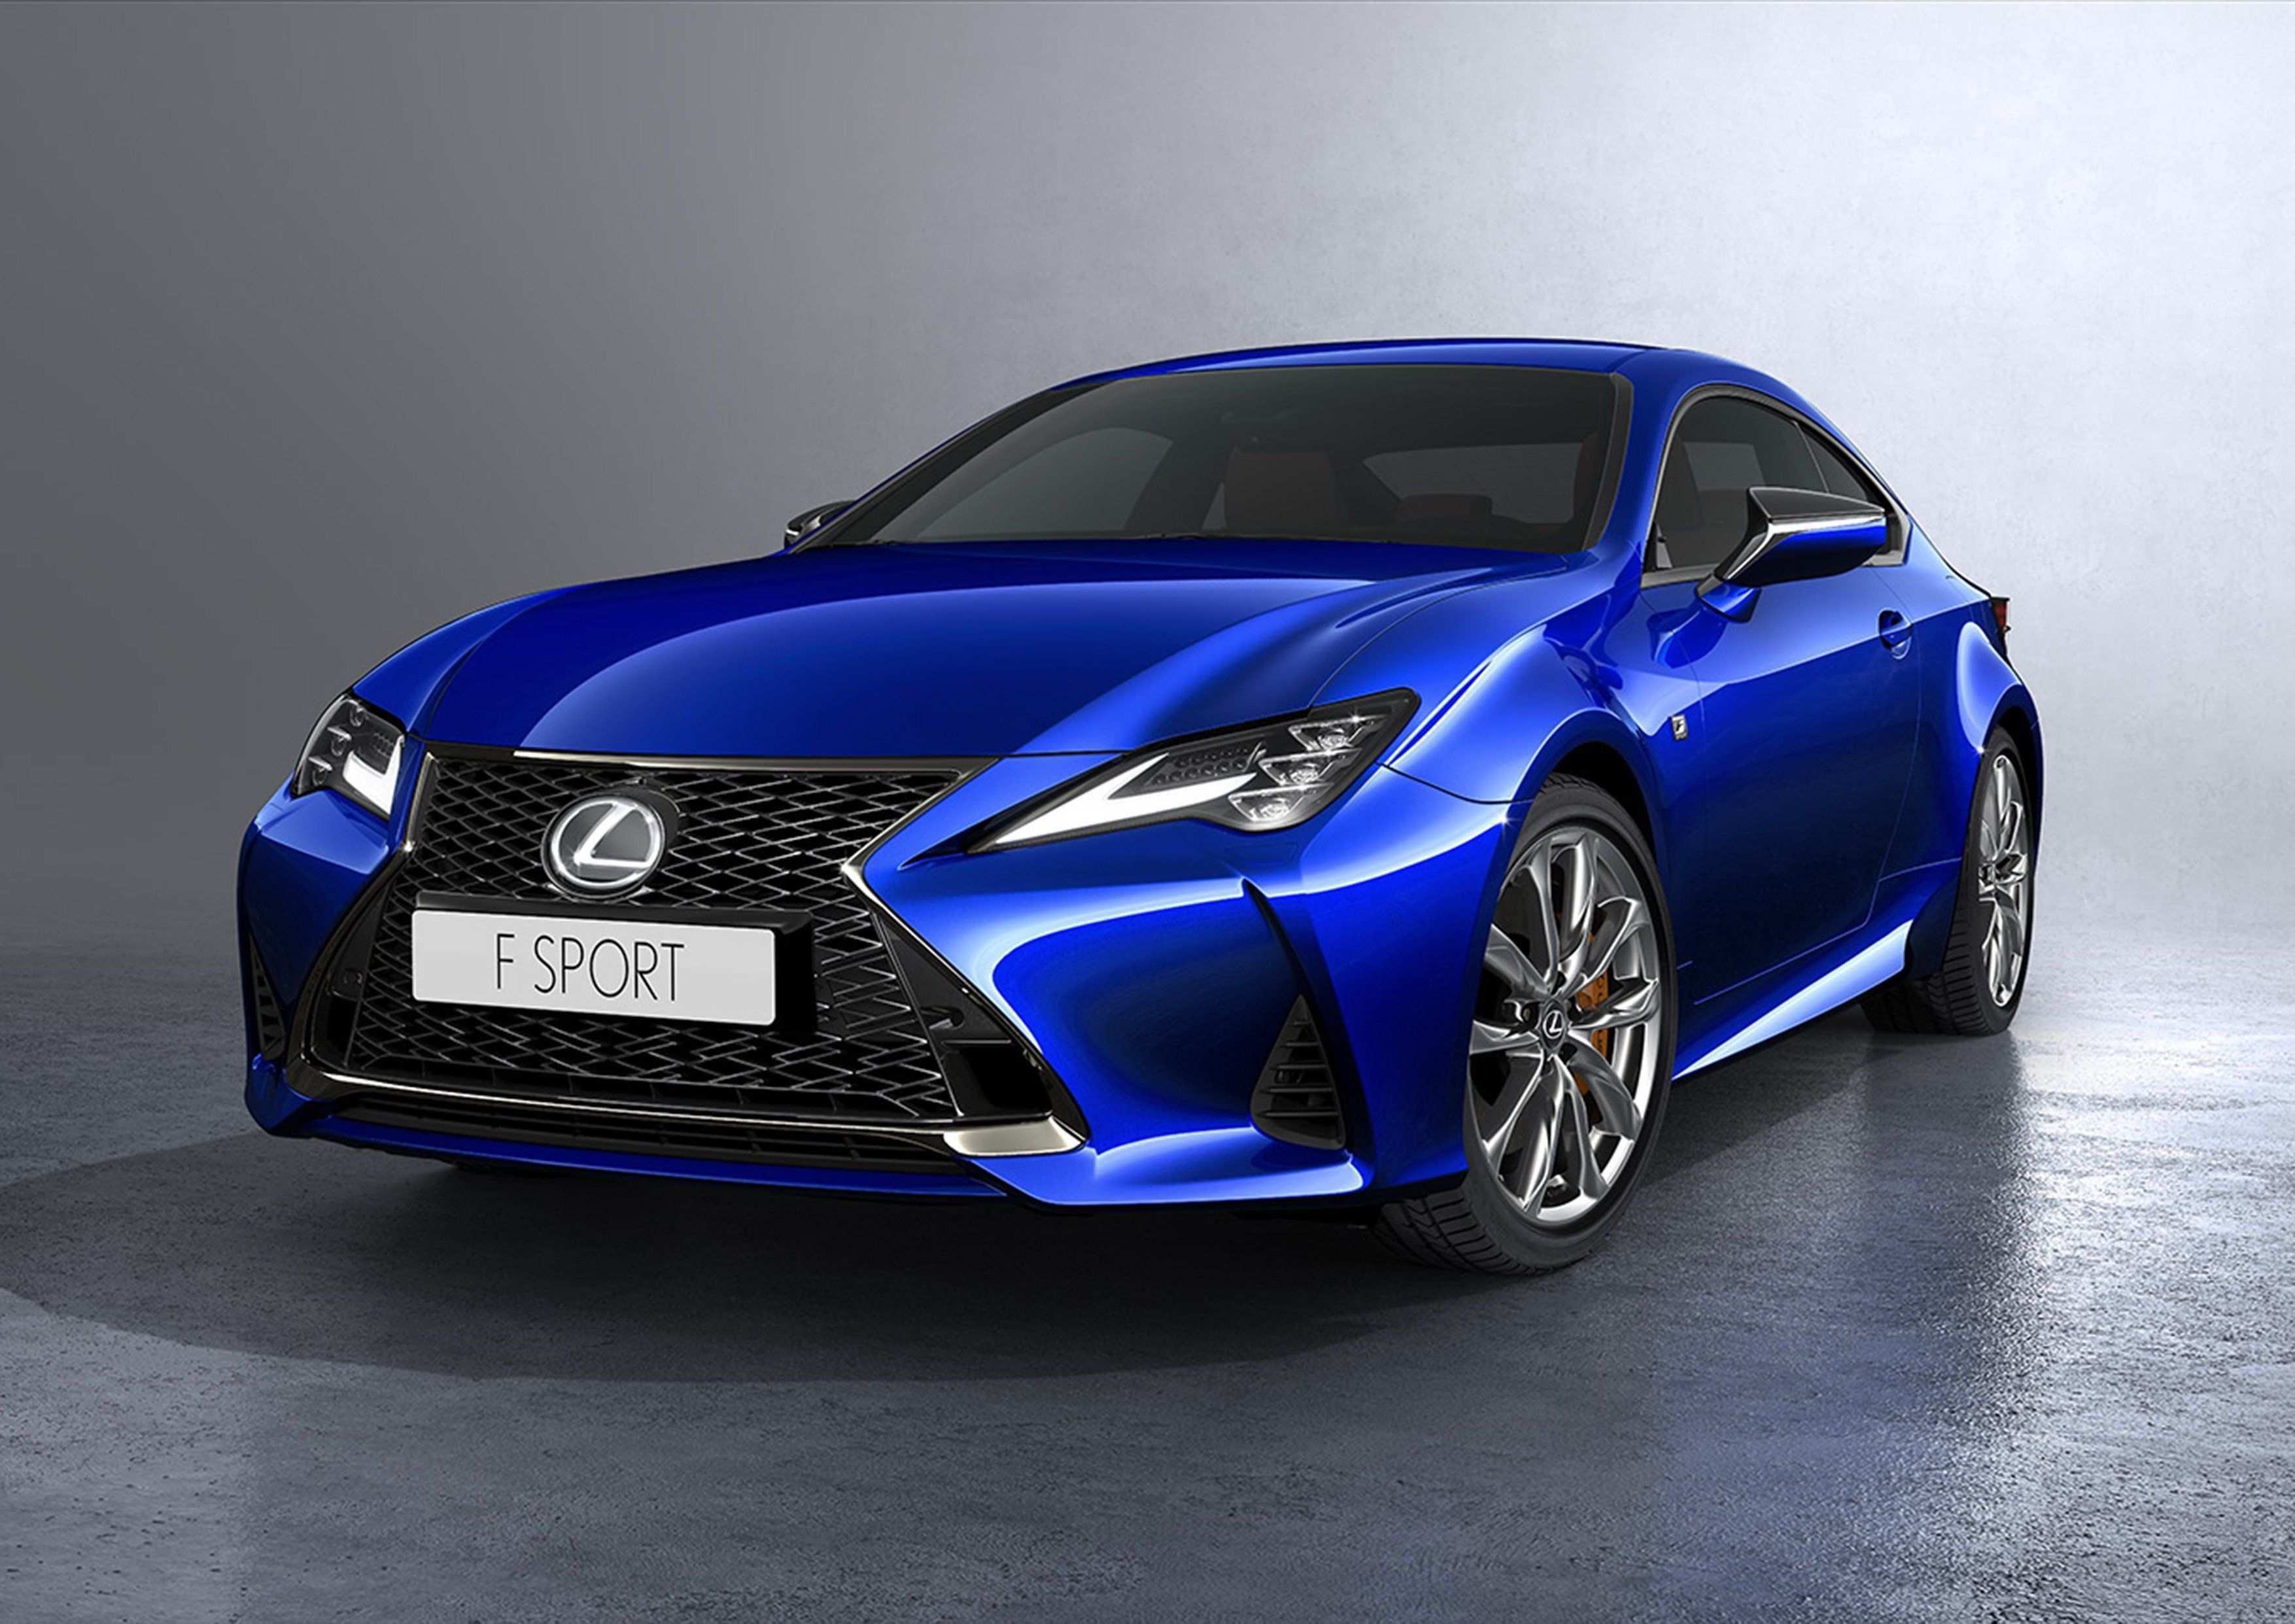 56 Great 2020 Lexus Vehicles Configurations by 2020 Lexus Vehicles